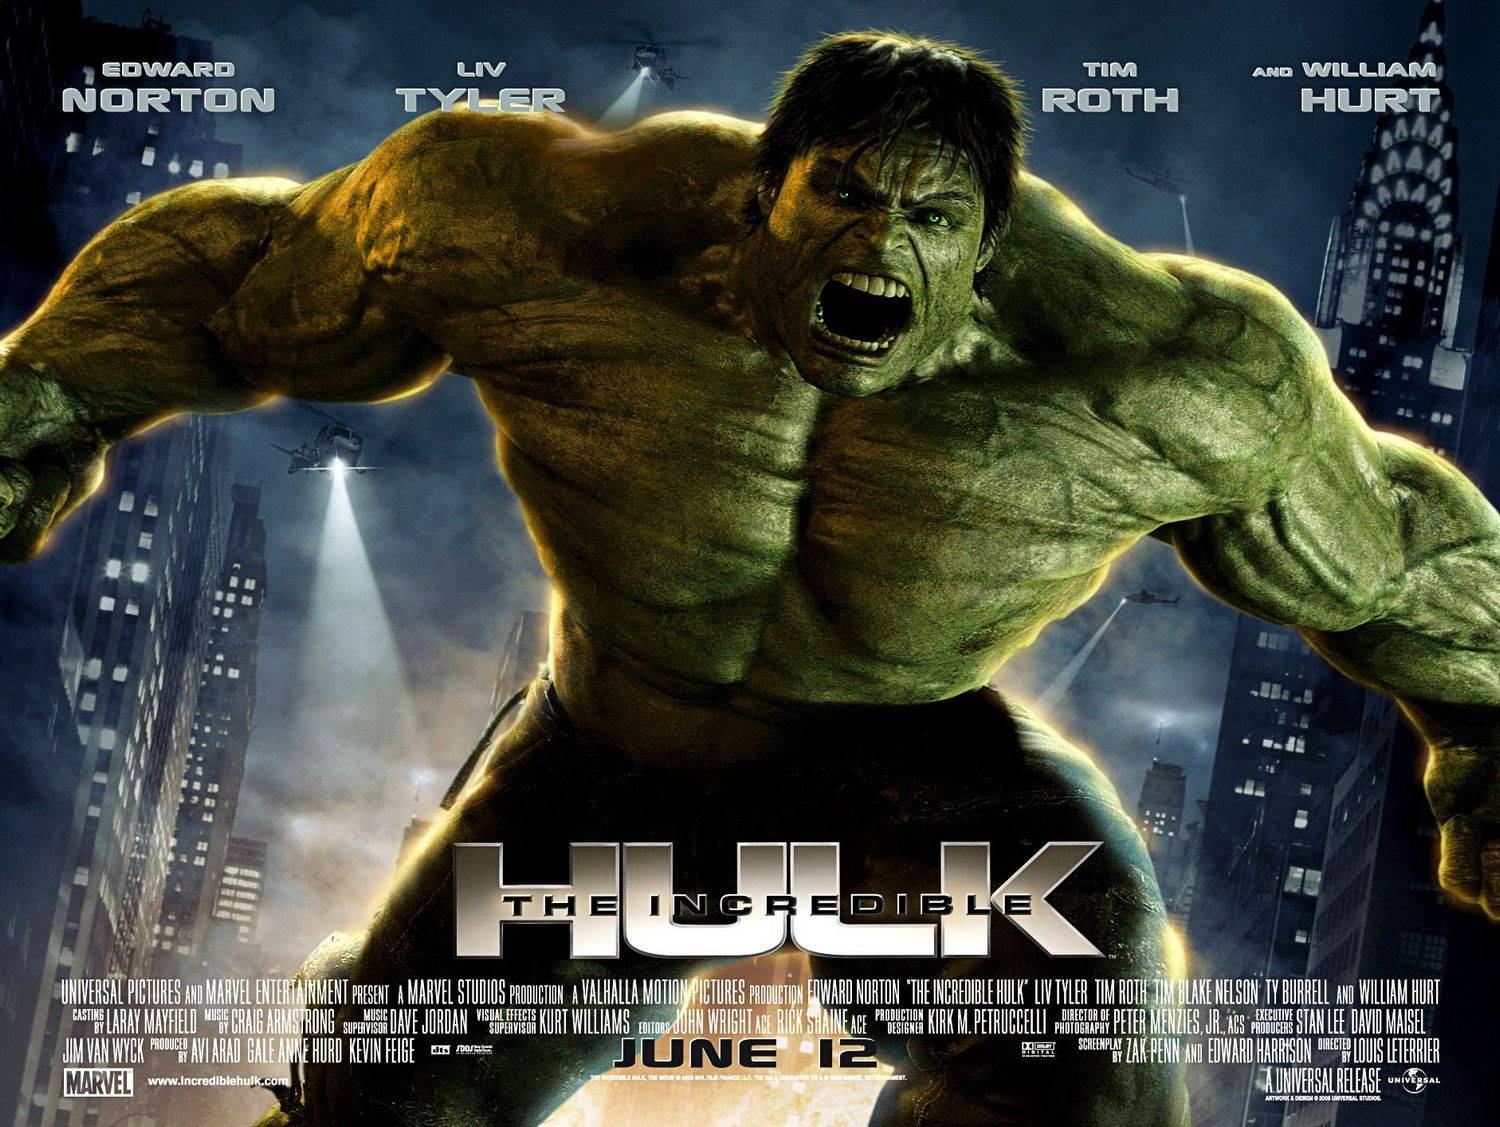 Incredible Hulk Wallpapers HD 3QJ844J   4USkY 1500x1127